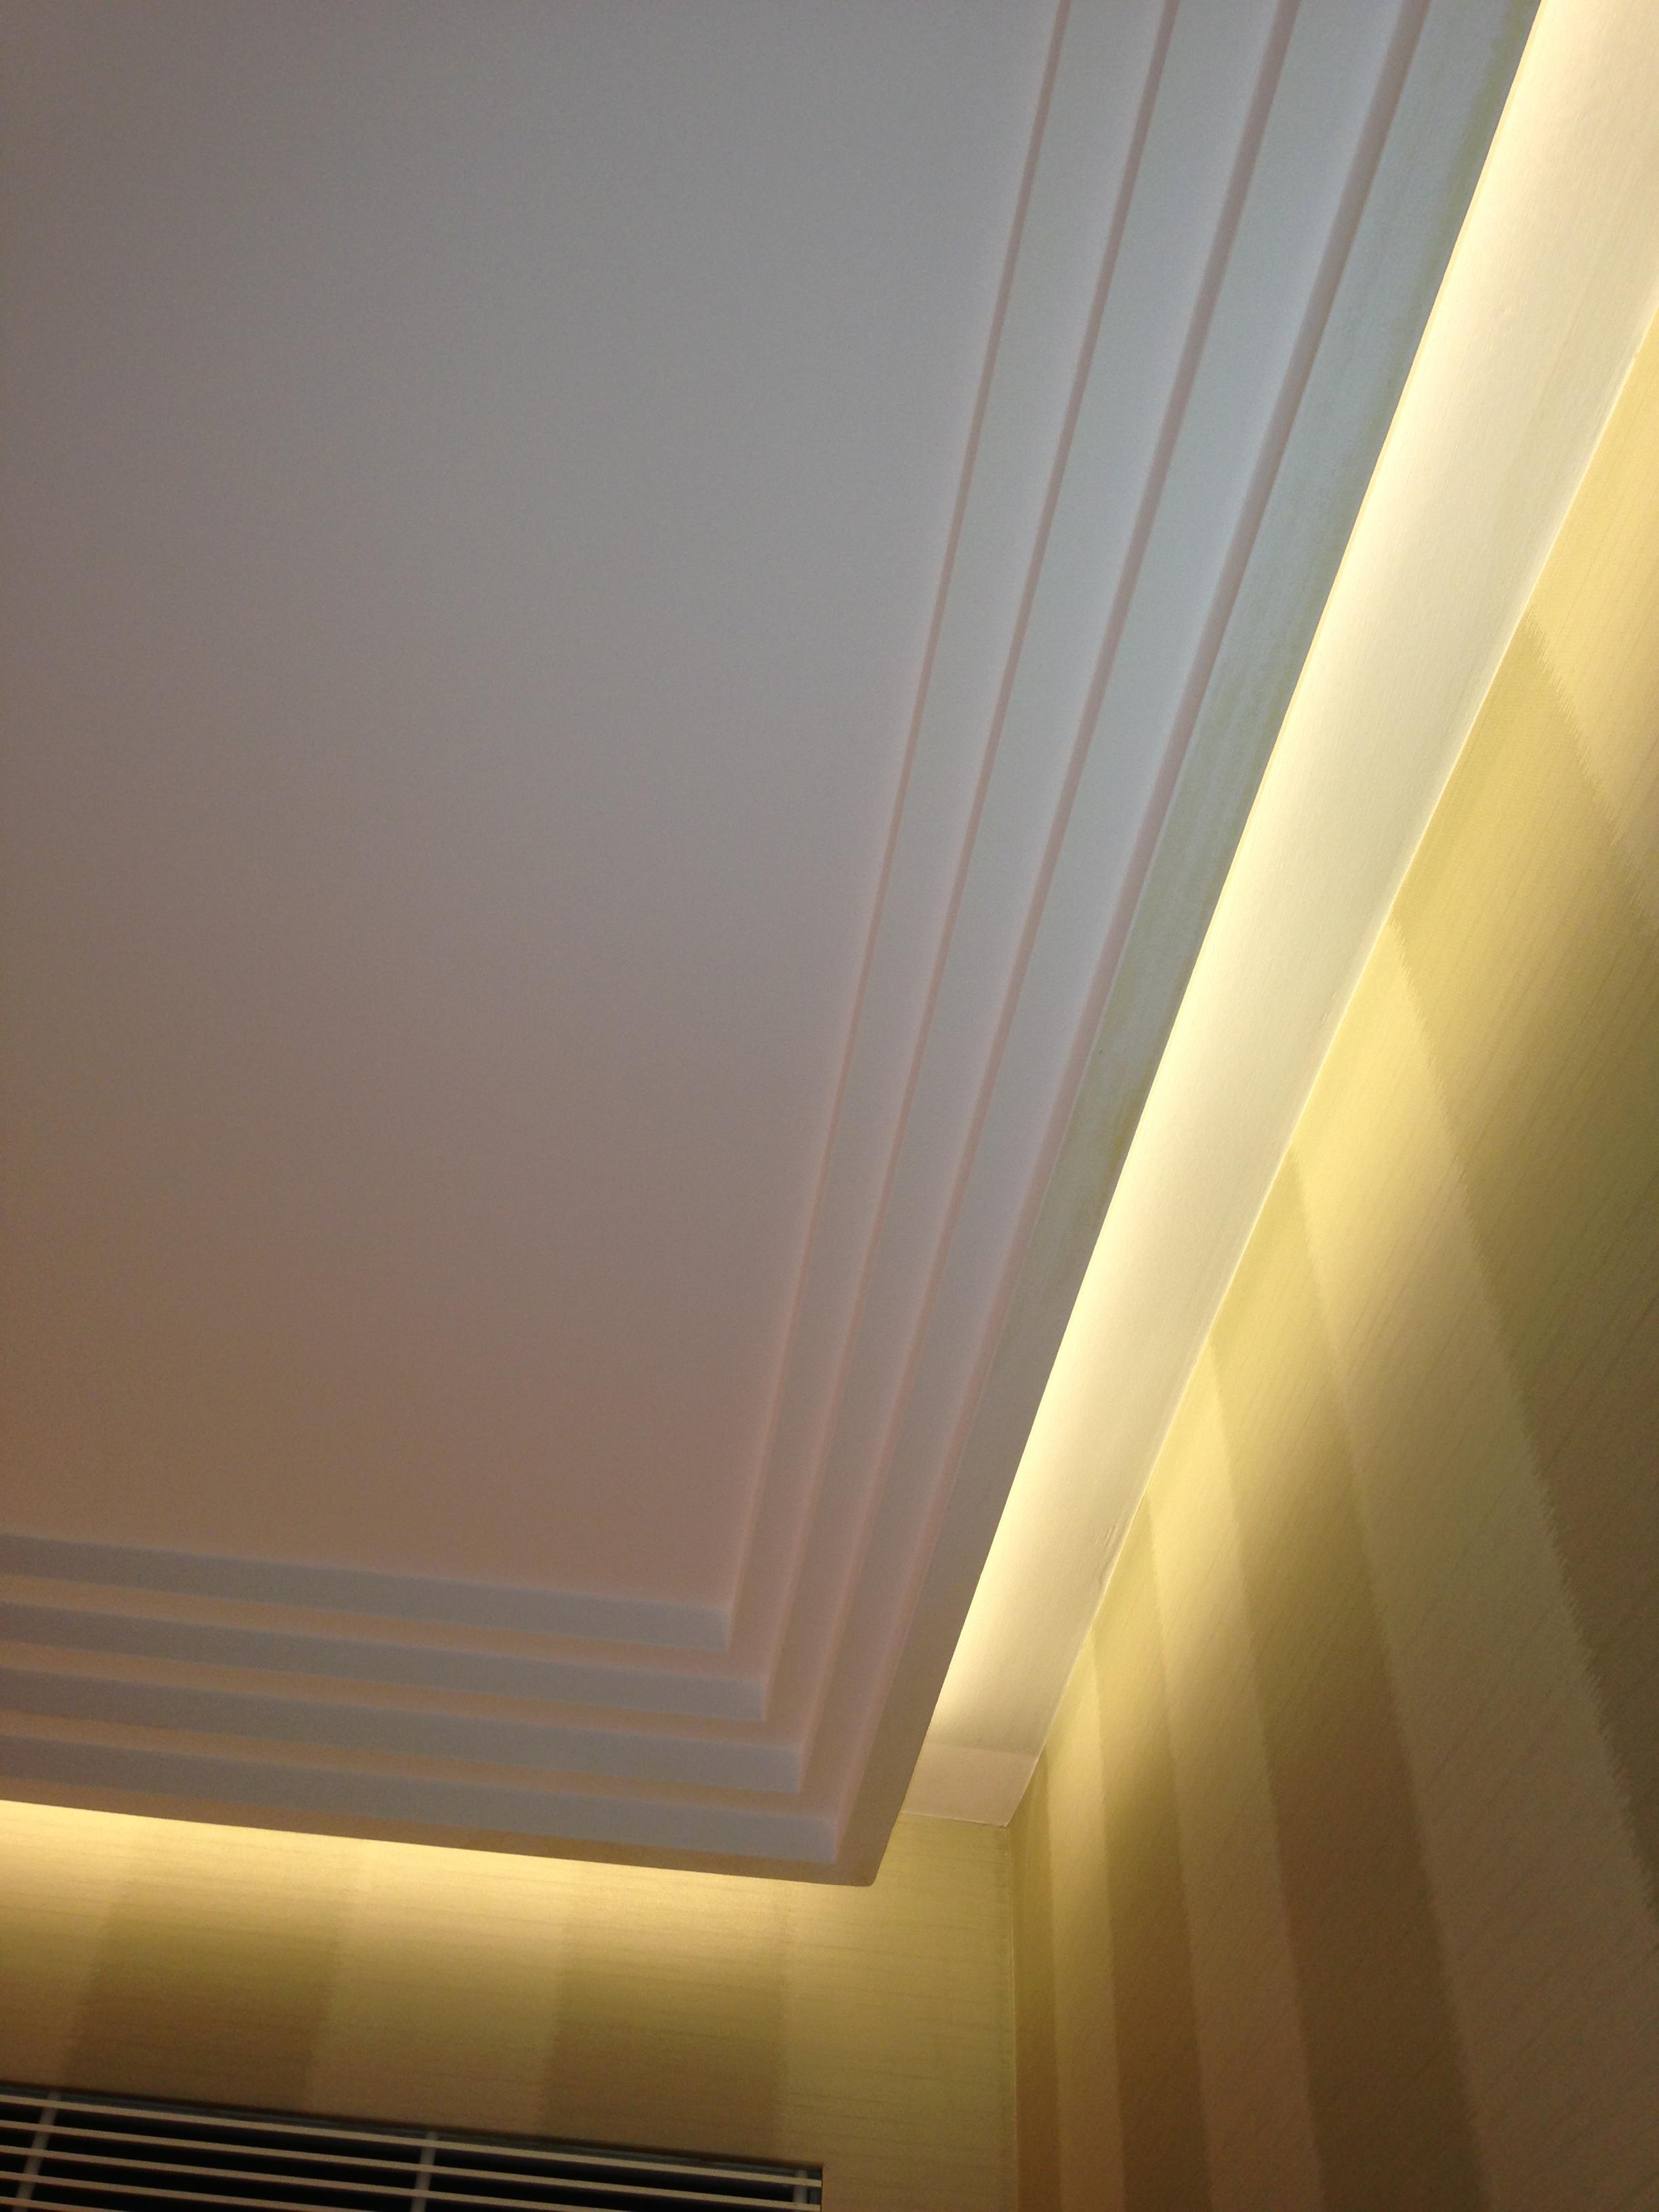 A Selection of Coving Lighting Designs & Coving Lighting - Lighting Troughs to Light any Room azcodes.com